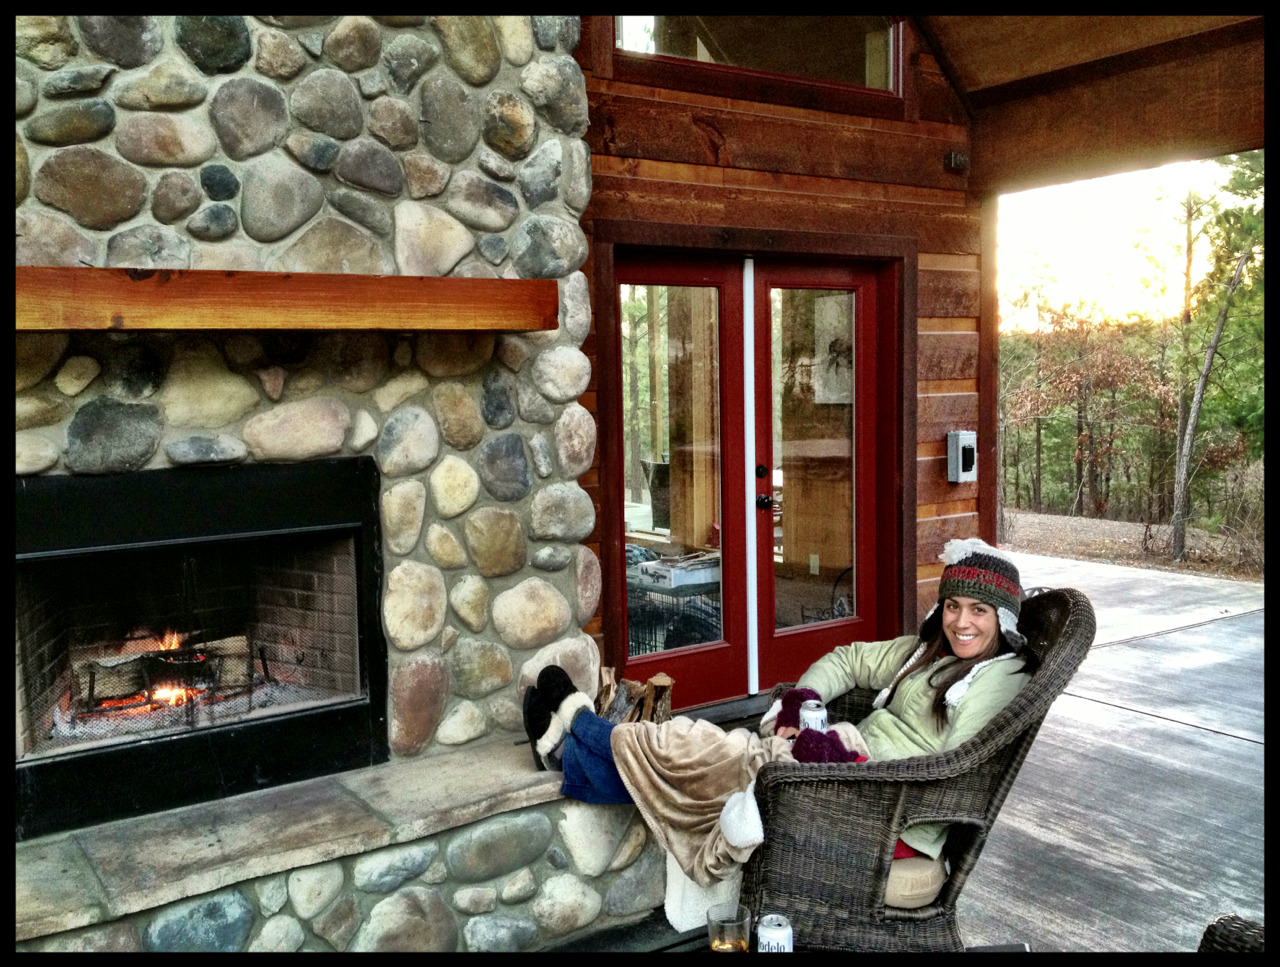 Cold weather, warm fire, and hot cider with rum, surrounded by pine trees at wanderlustcabin.com. Greatness!